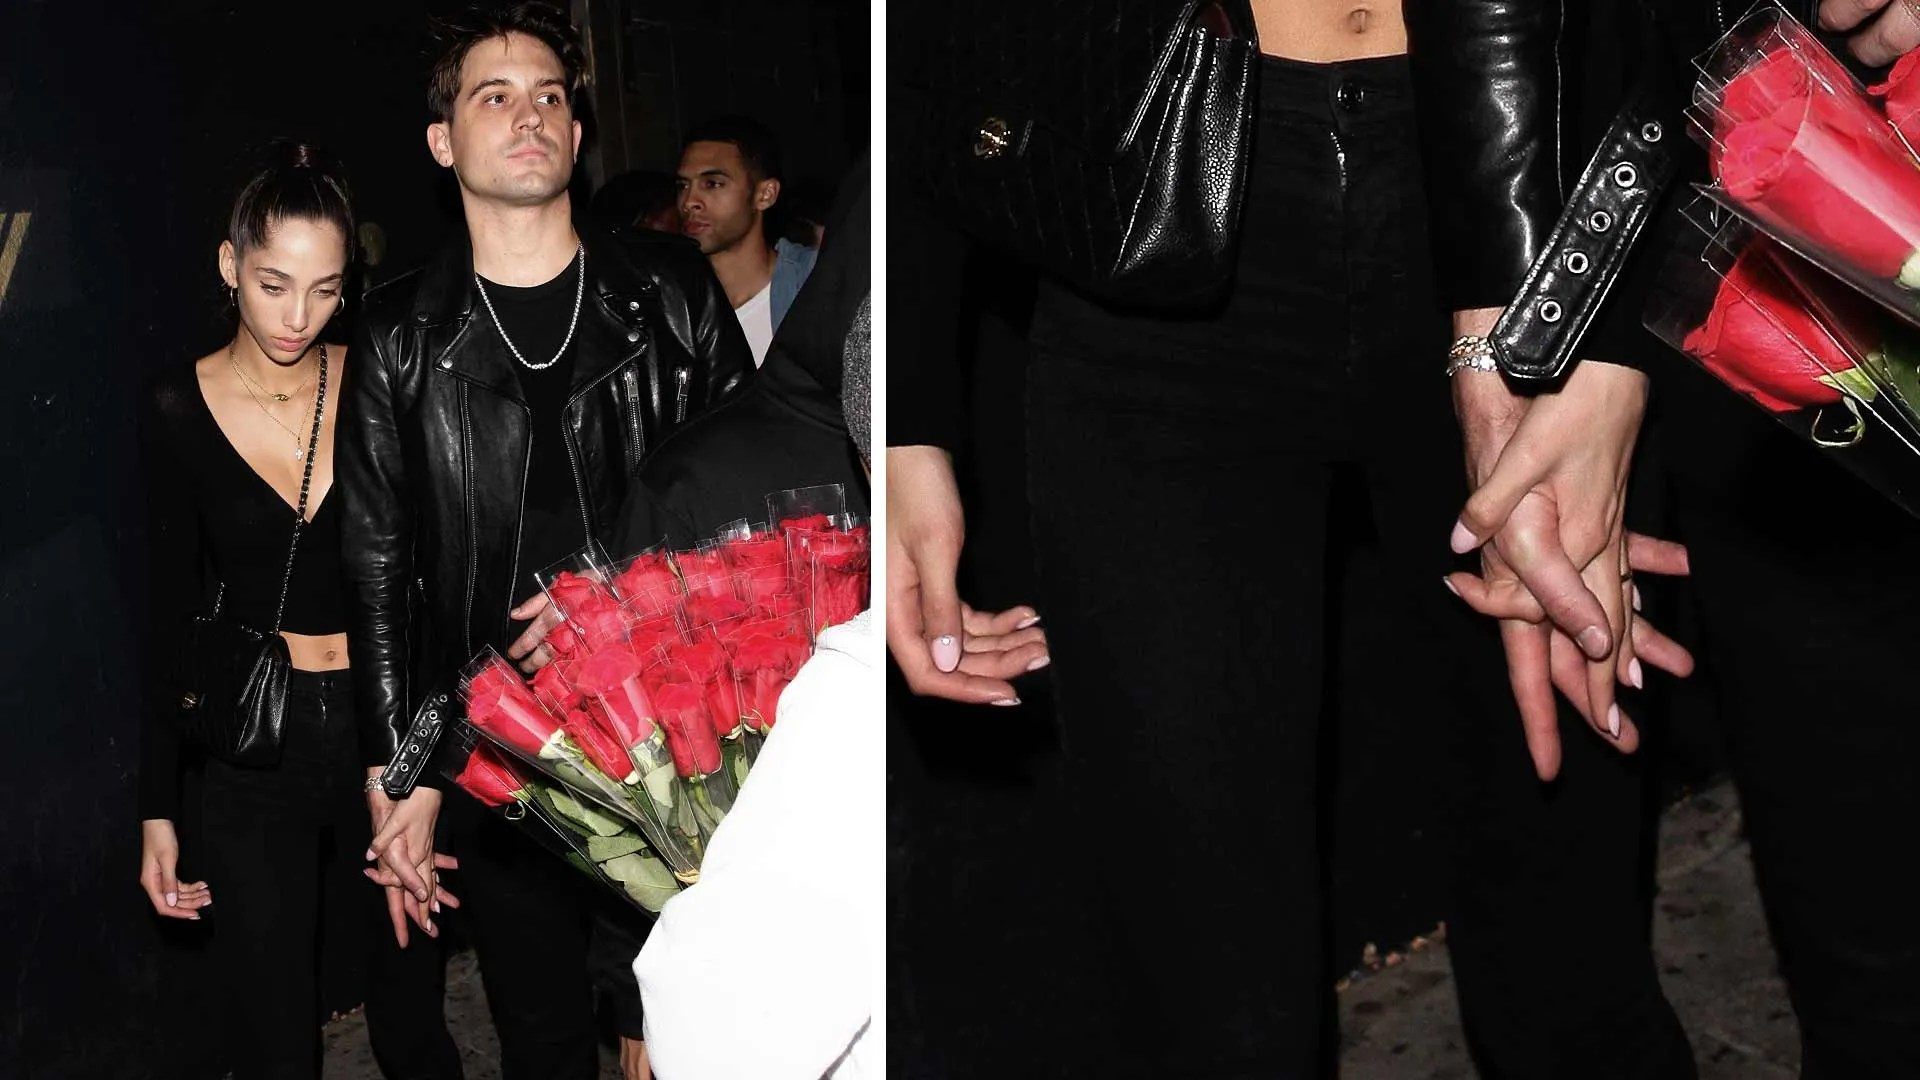 G-Eazy Confirms He's Dating Victoria's Secret Model By Getting Handsy on Date Night